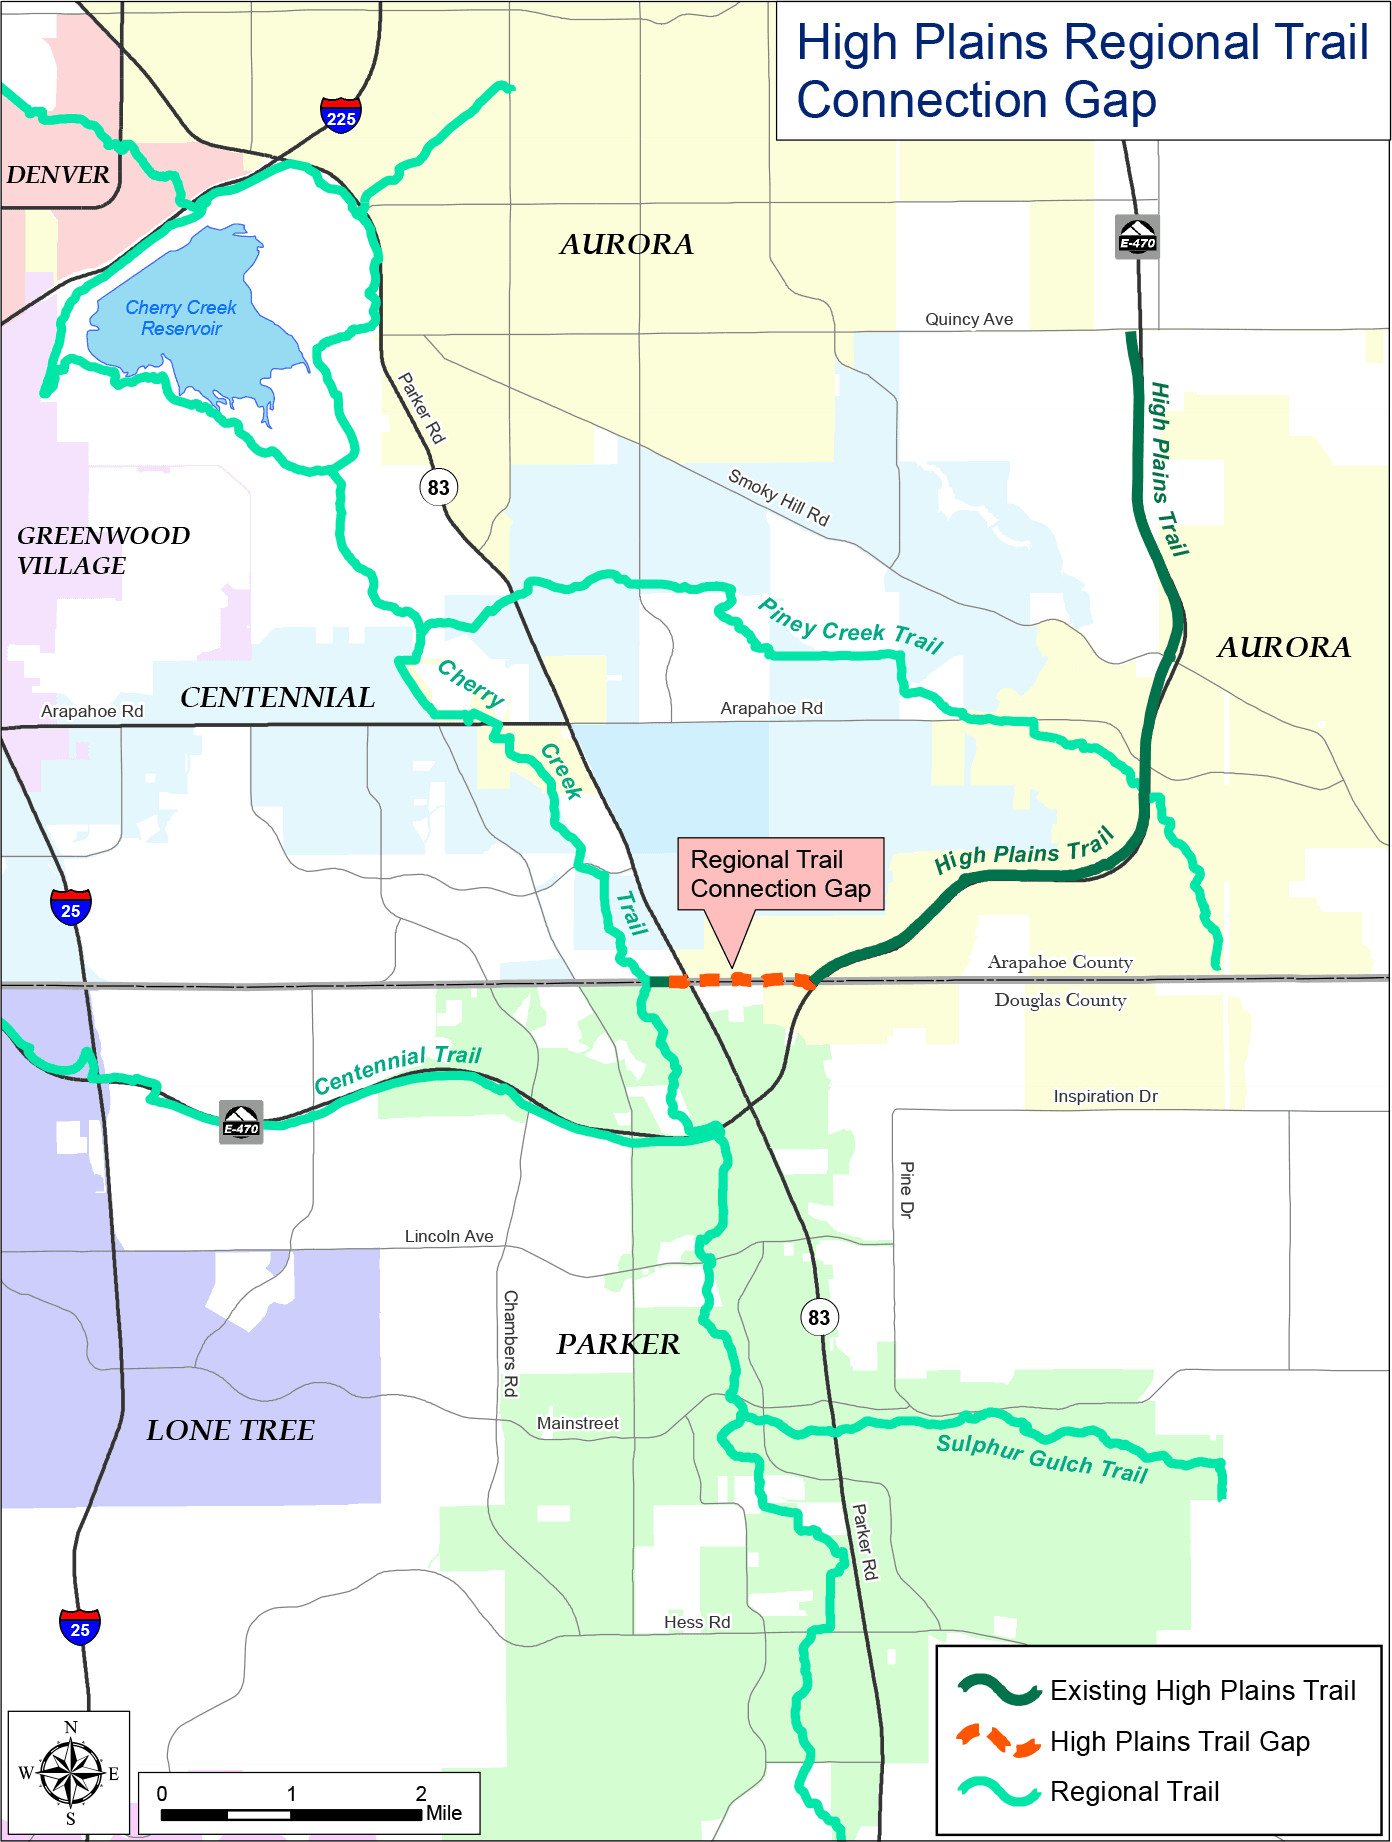 High Plains Trail Connection Gap Regional Map